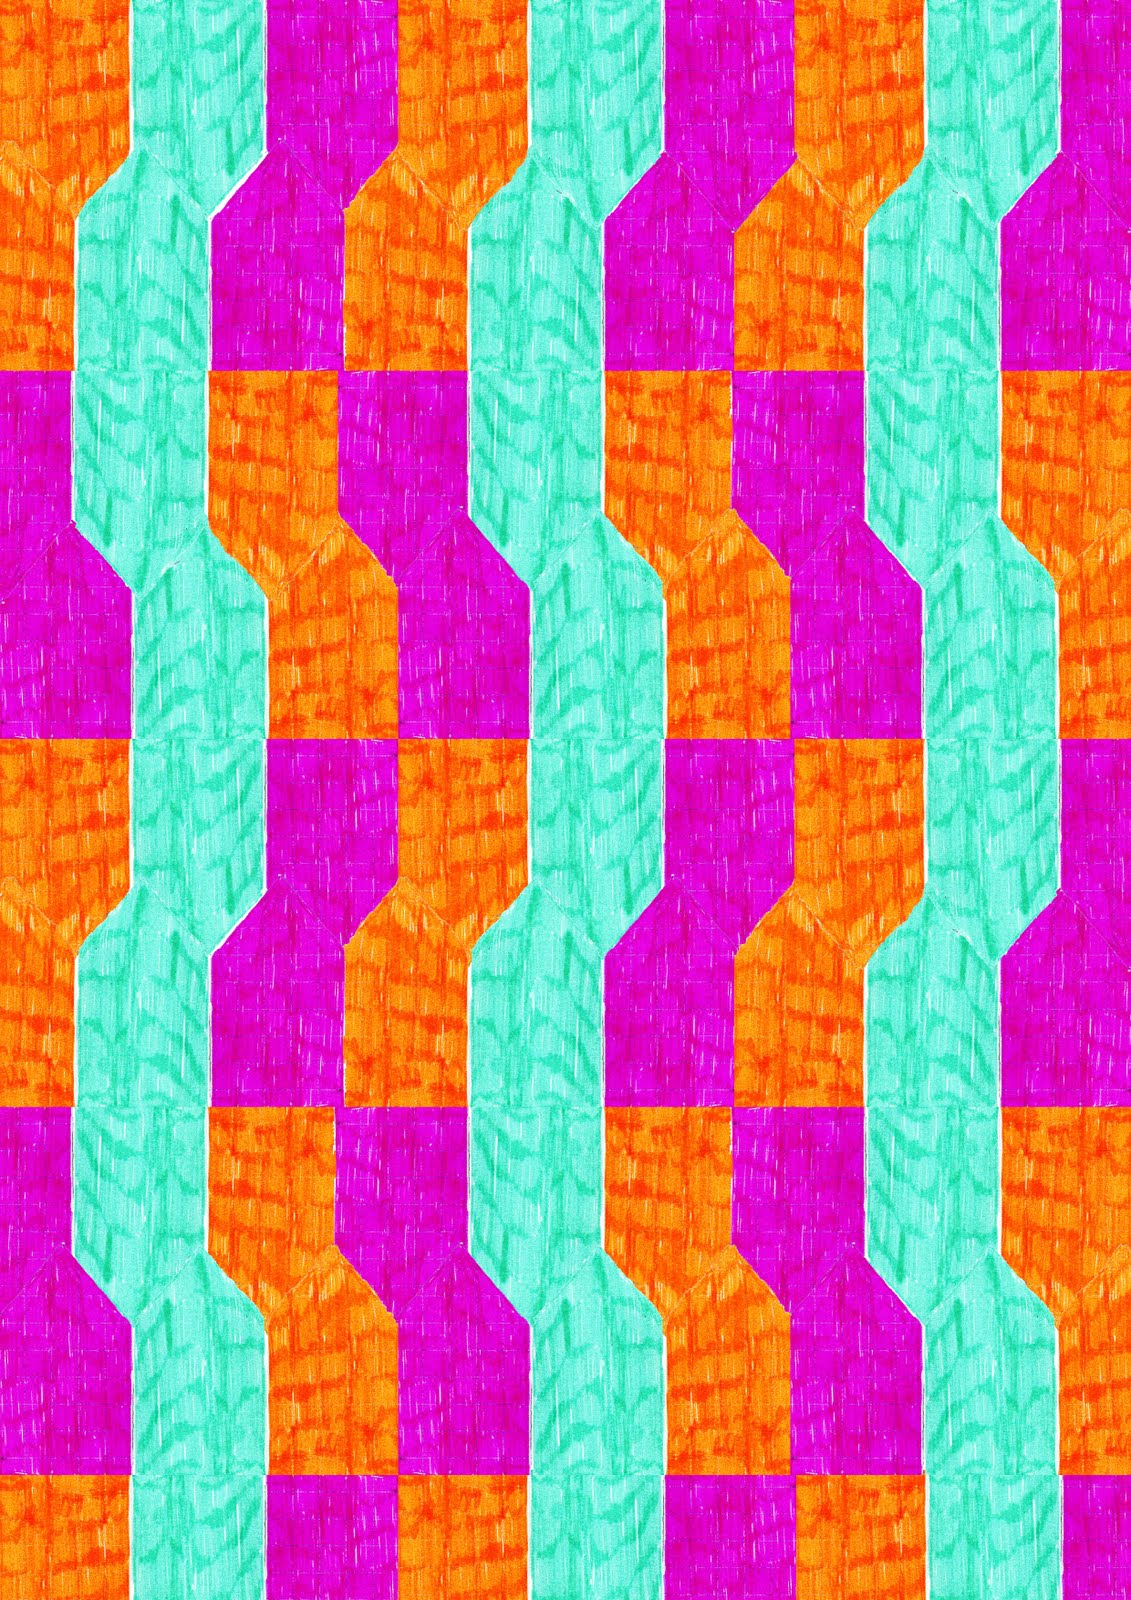 Bright Colourful PatternsBright Colourful Patterns